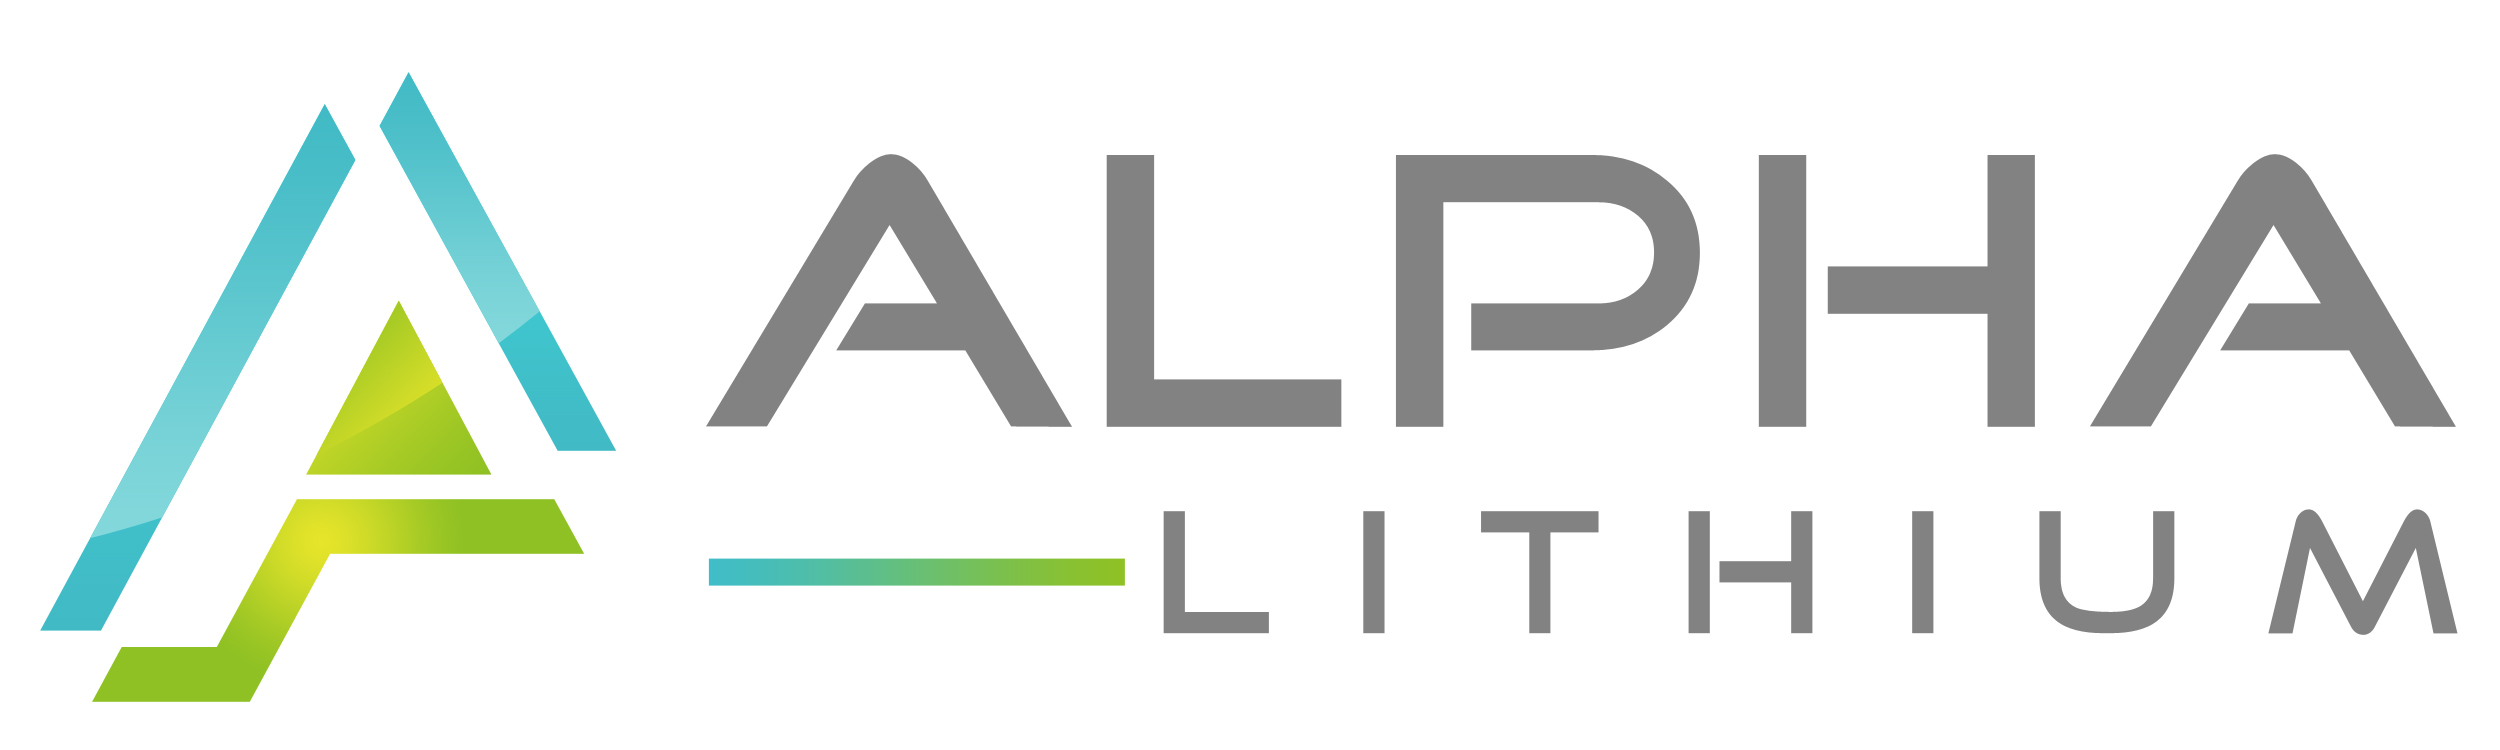 Alpha Lithium Receives Drilling License for Phase Two of Drilling at Tolillar Lithium Project in Argentina